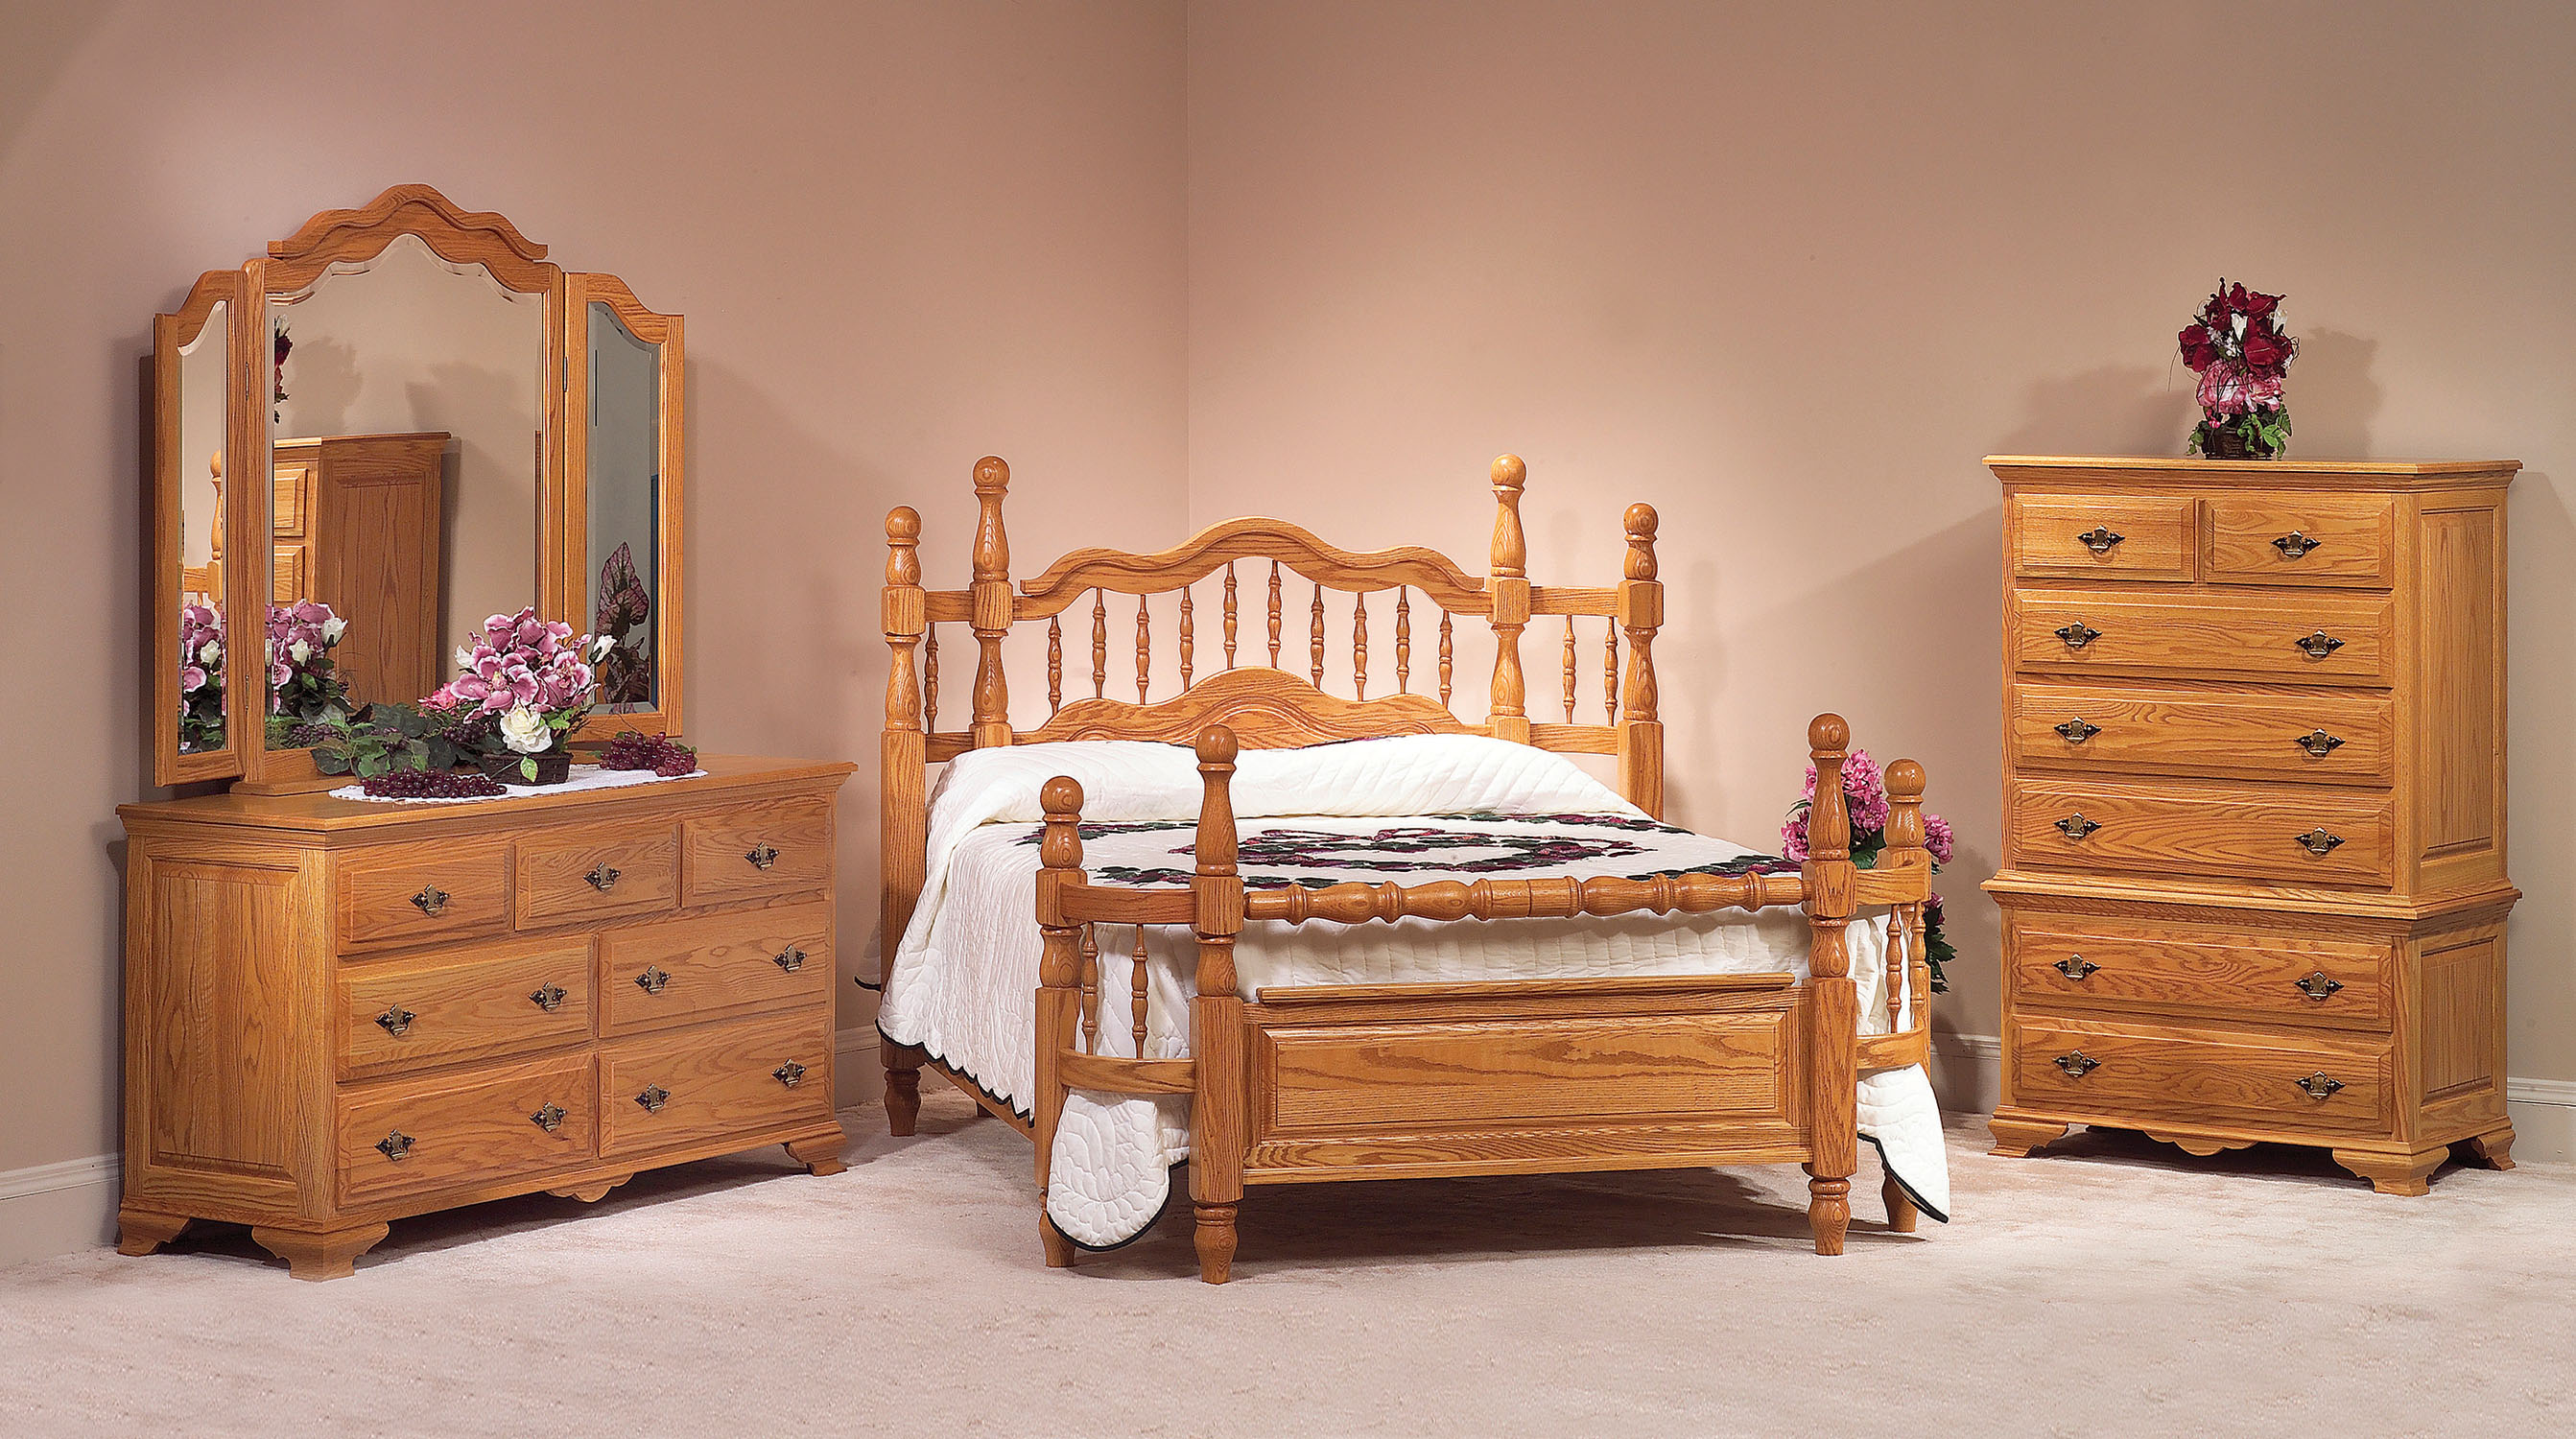 Handcrafted Solid Wood Amish Bedroom Furniture Collections